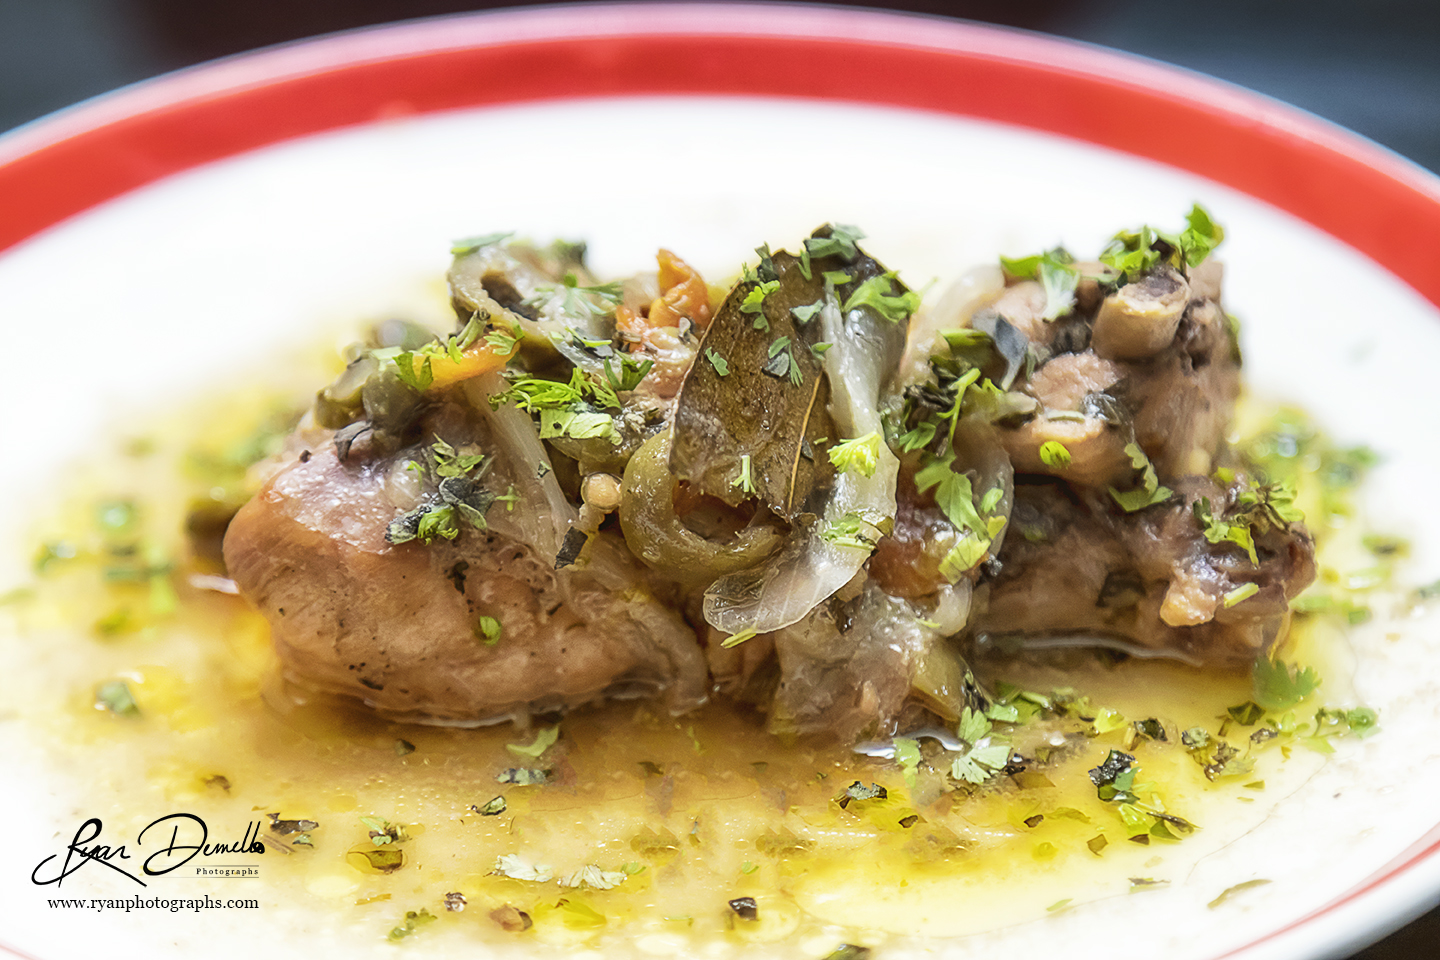 Roast Chicken With Honey, Olives And Capers